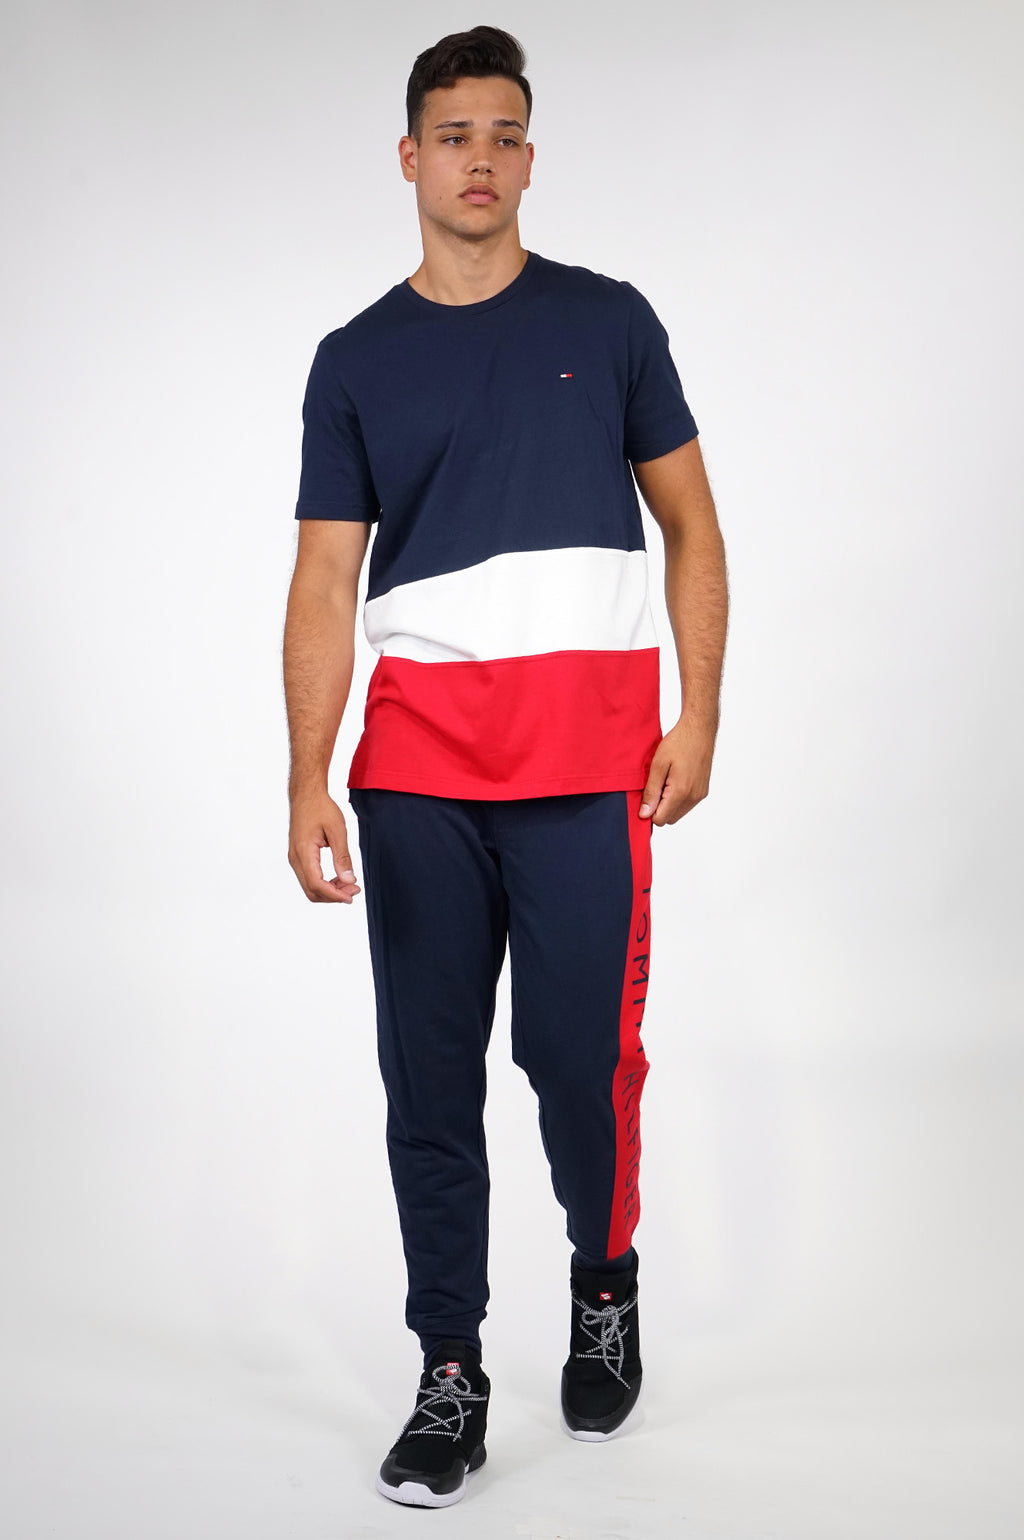 TOMMY HILFIGER LOUNGEWEAR MENS S/S COLOR BLOCK TEE